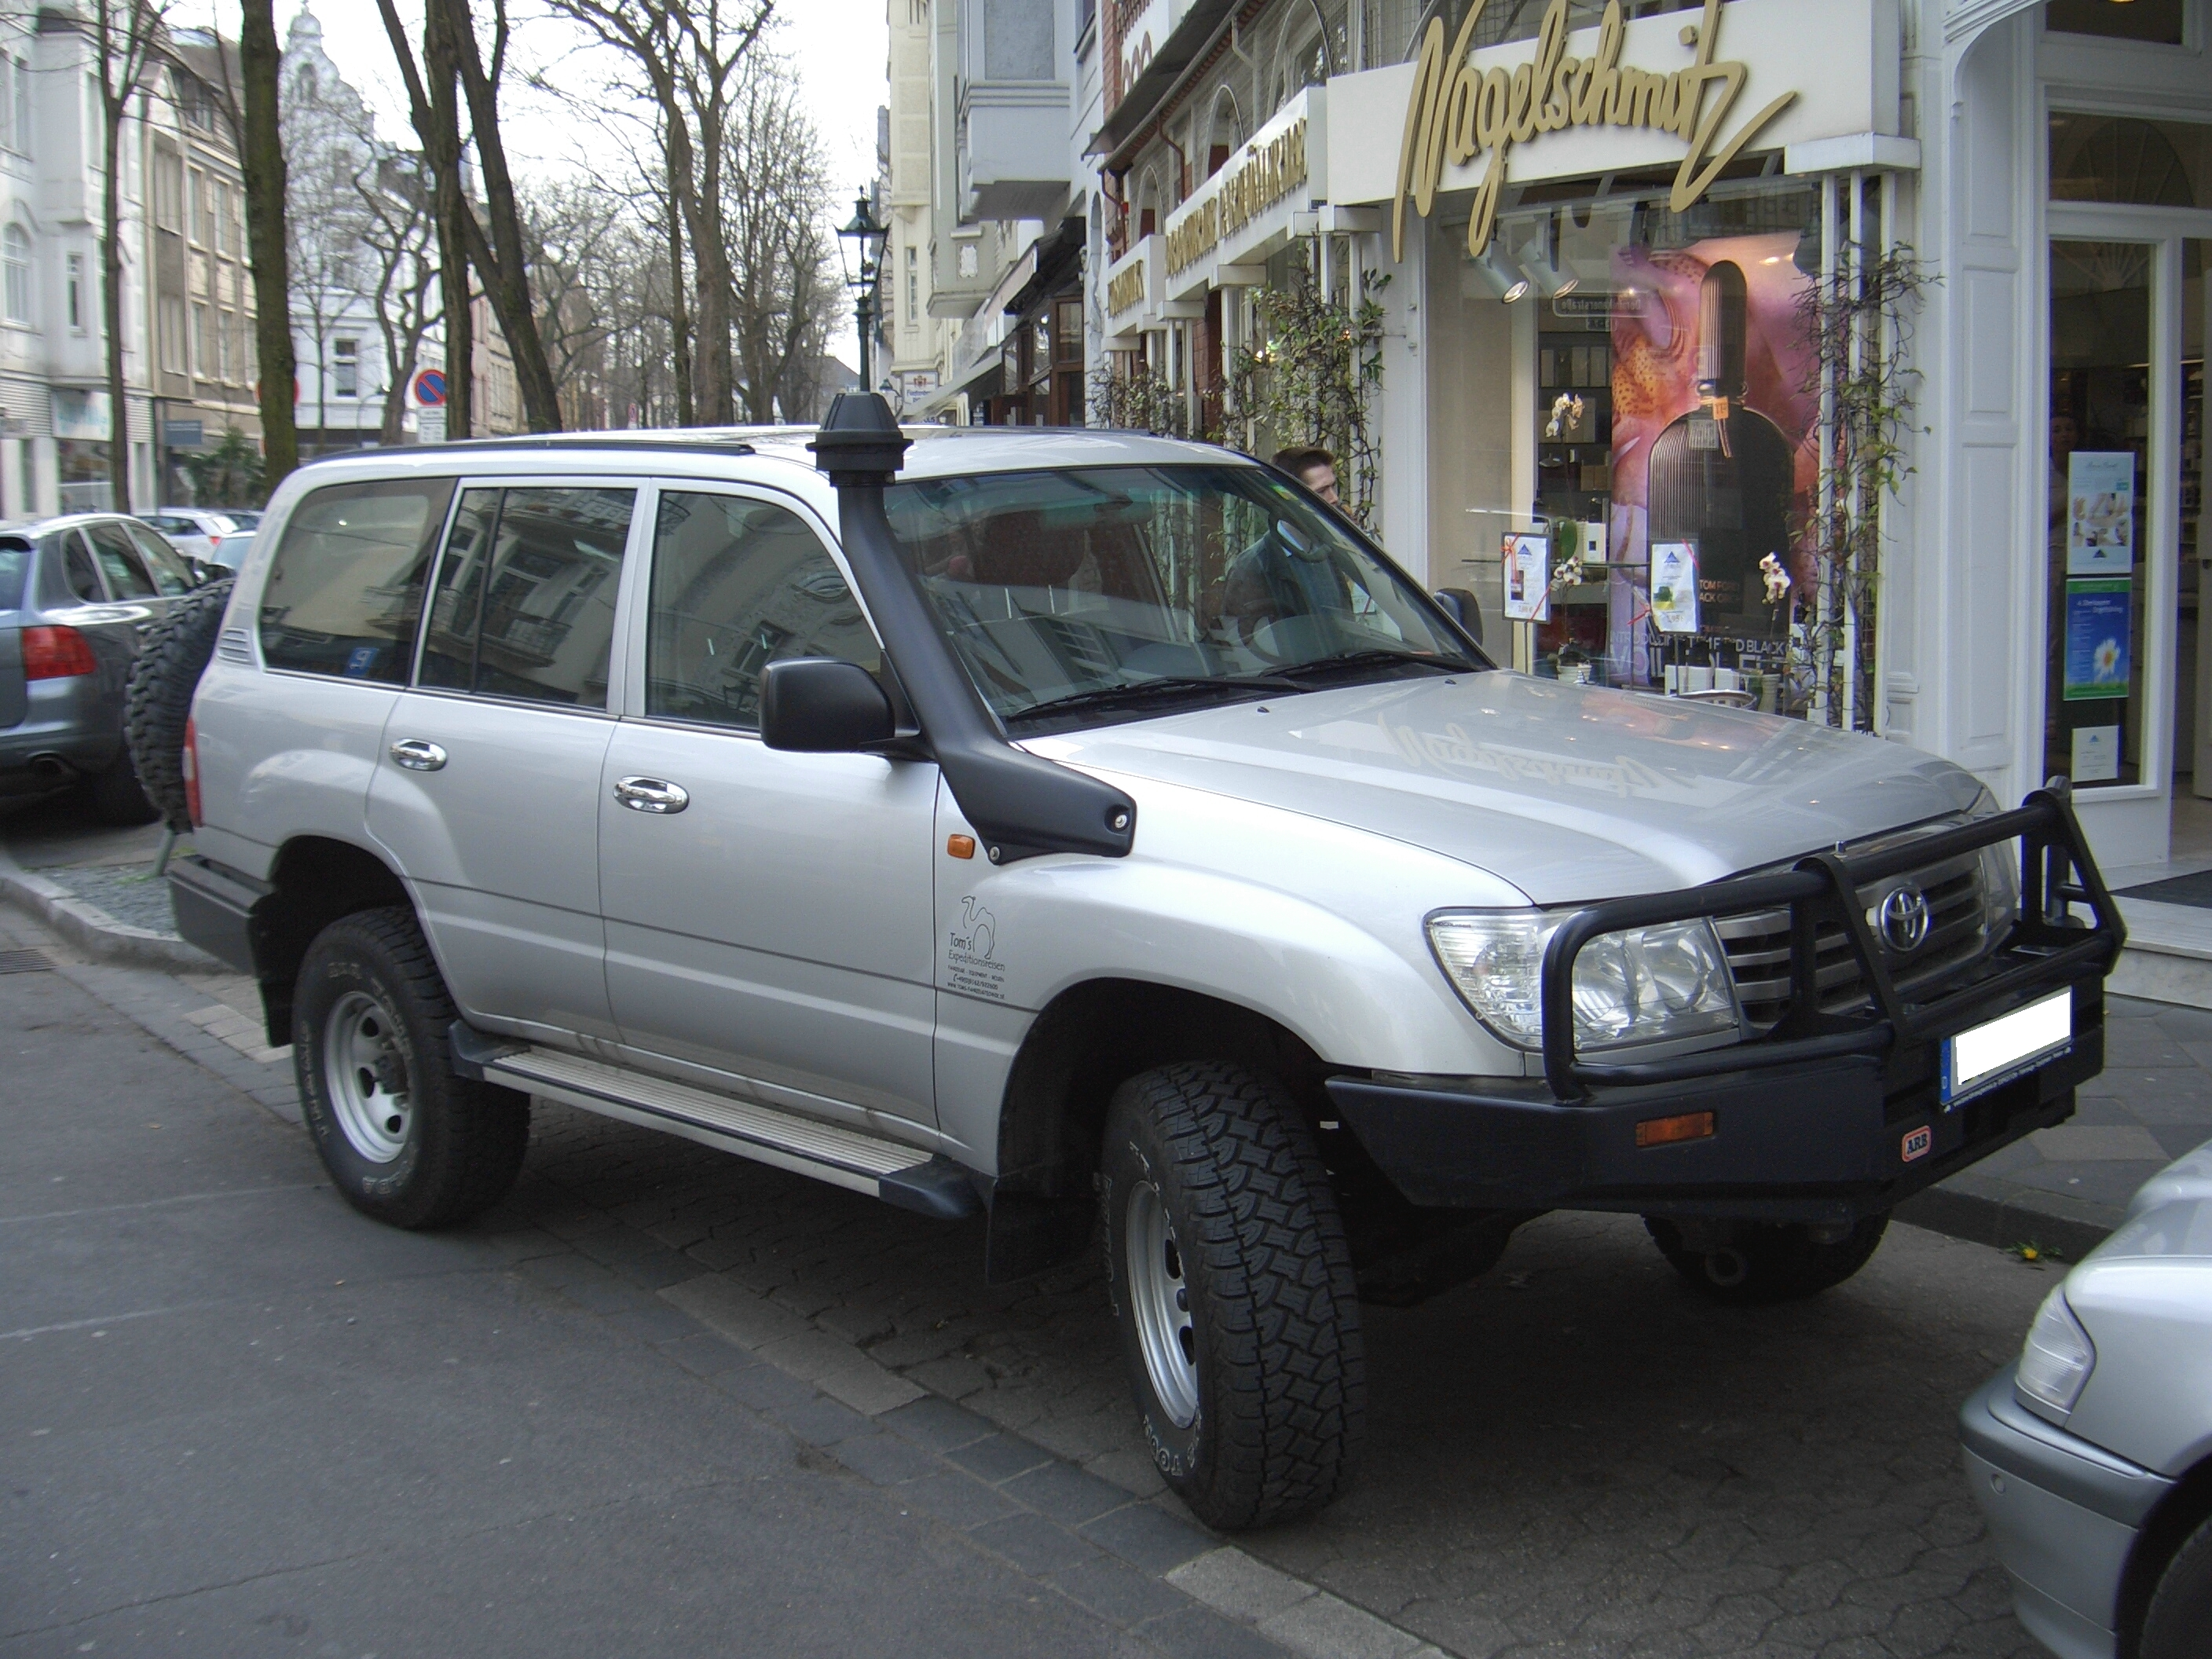 Toyota Land Cruiser Wiki >> File:Toyota Land Cruiser 100 series 1998-2007 TOMS FAHRZEUGTECHNIK conversion frontright 2008-04 ...